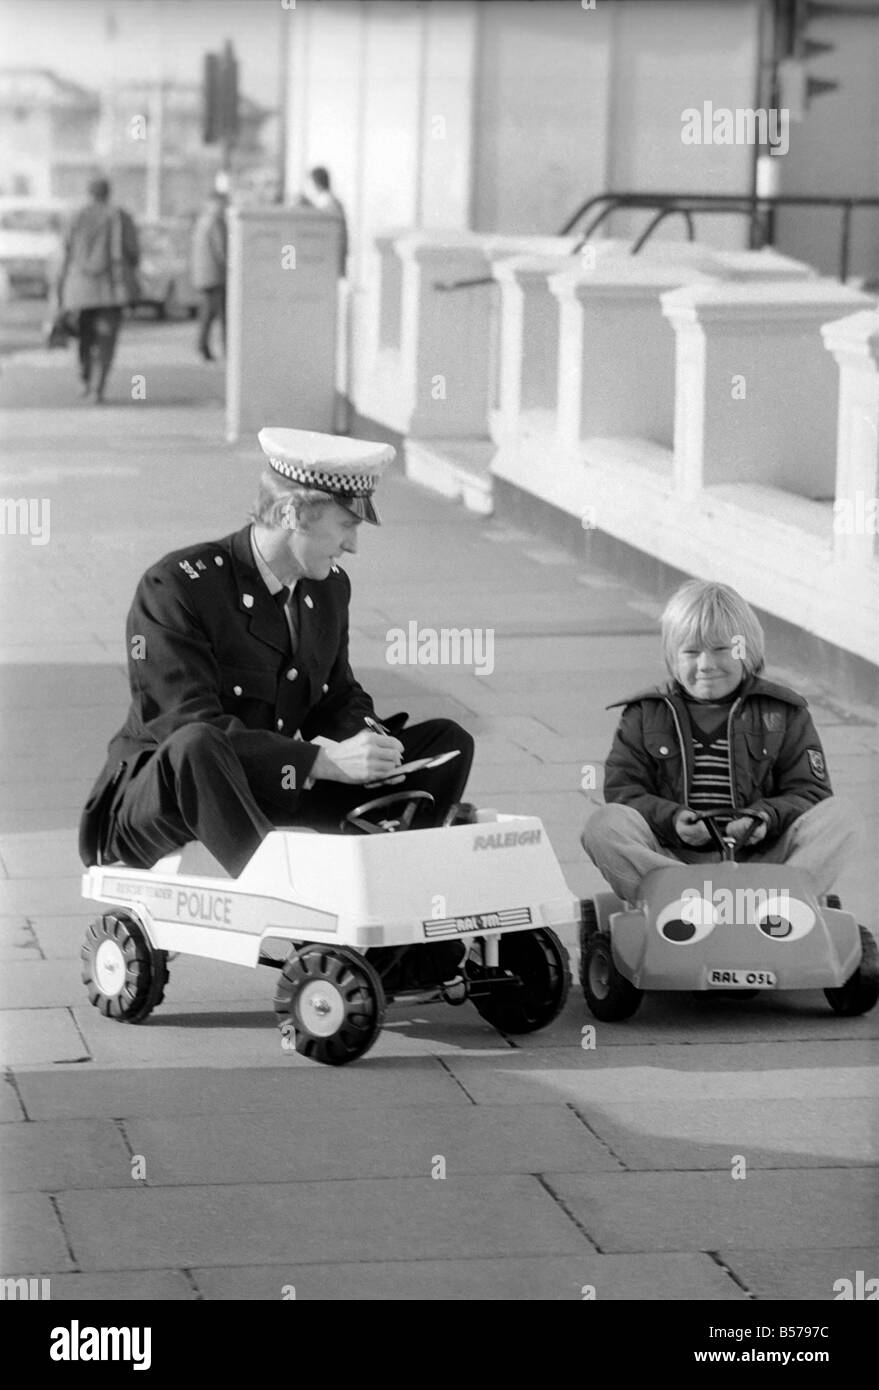 Pull Over Car Meaning : Pedal cars stock photos images alamy